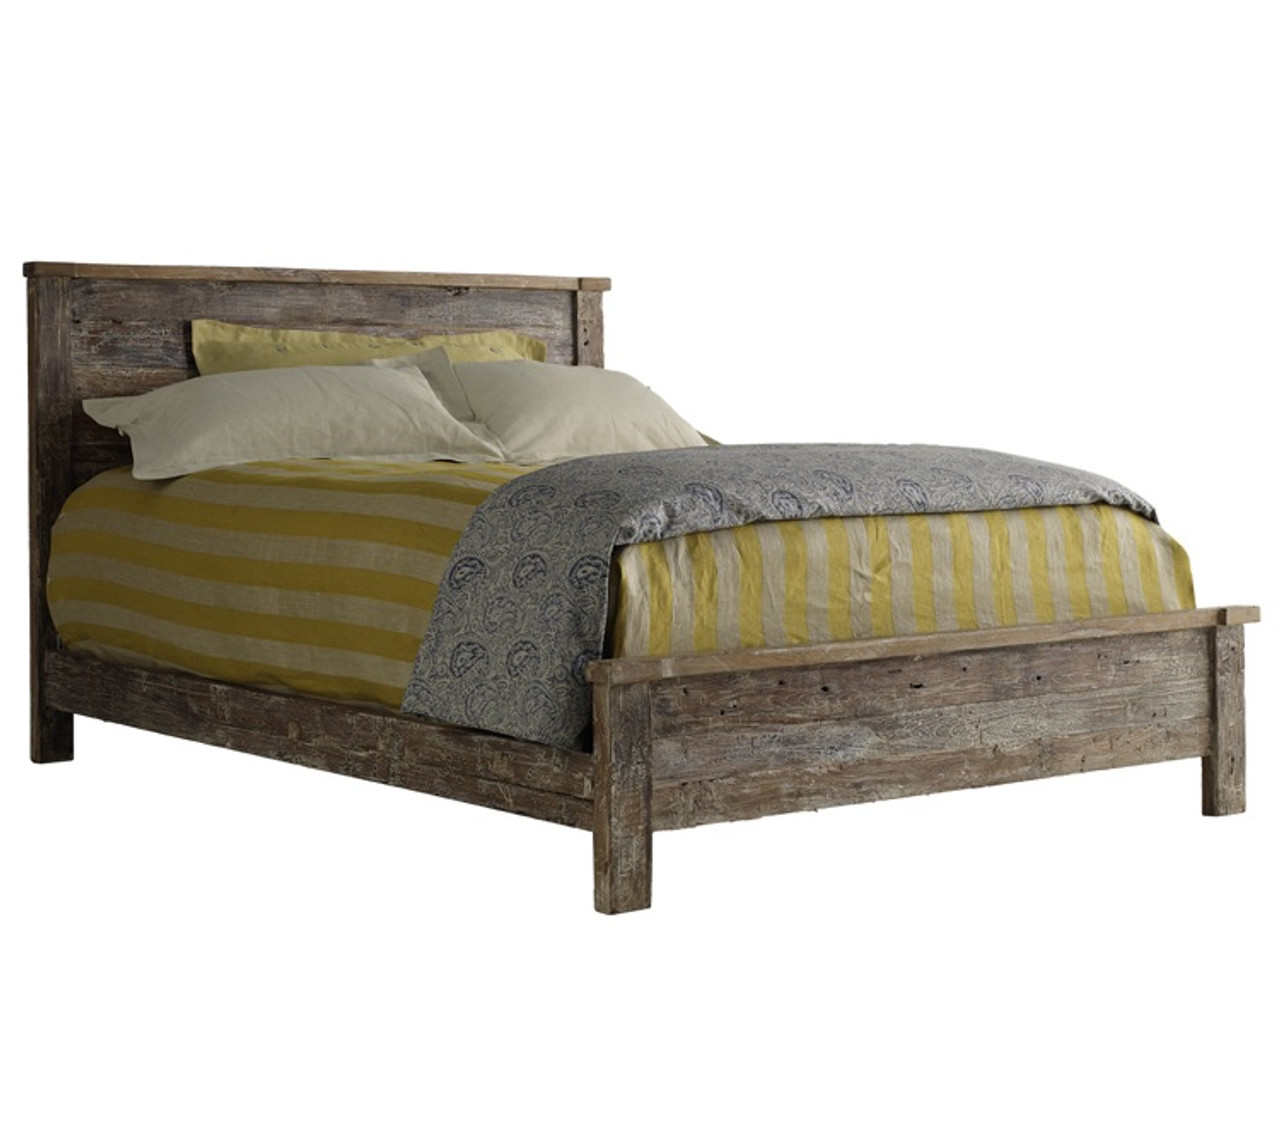 Hampton Rustic Teak Wood Queen Bed Frame | Zin Home